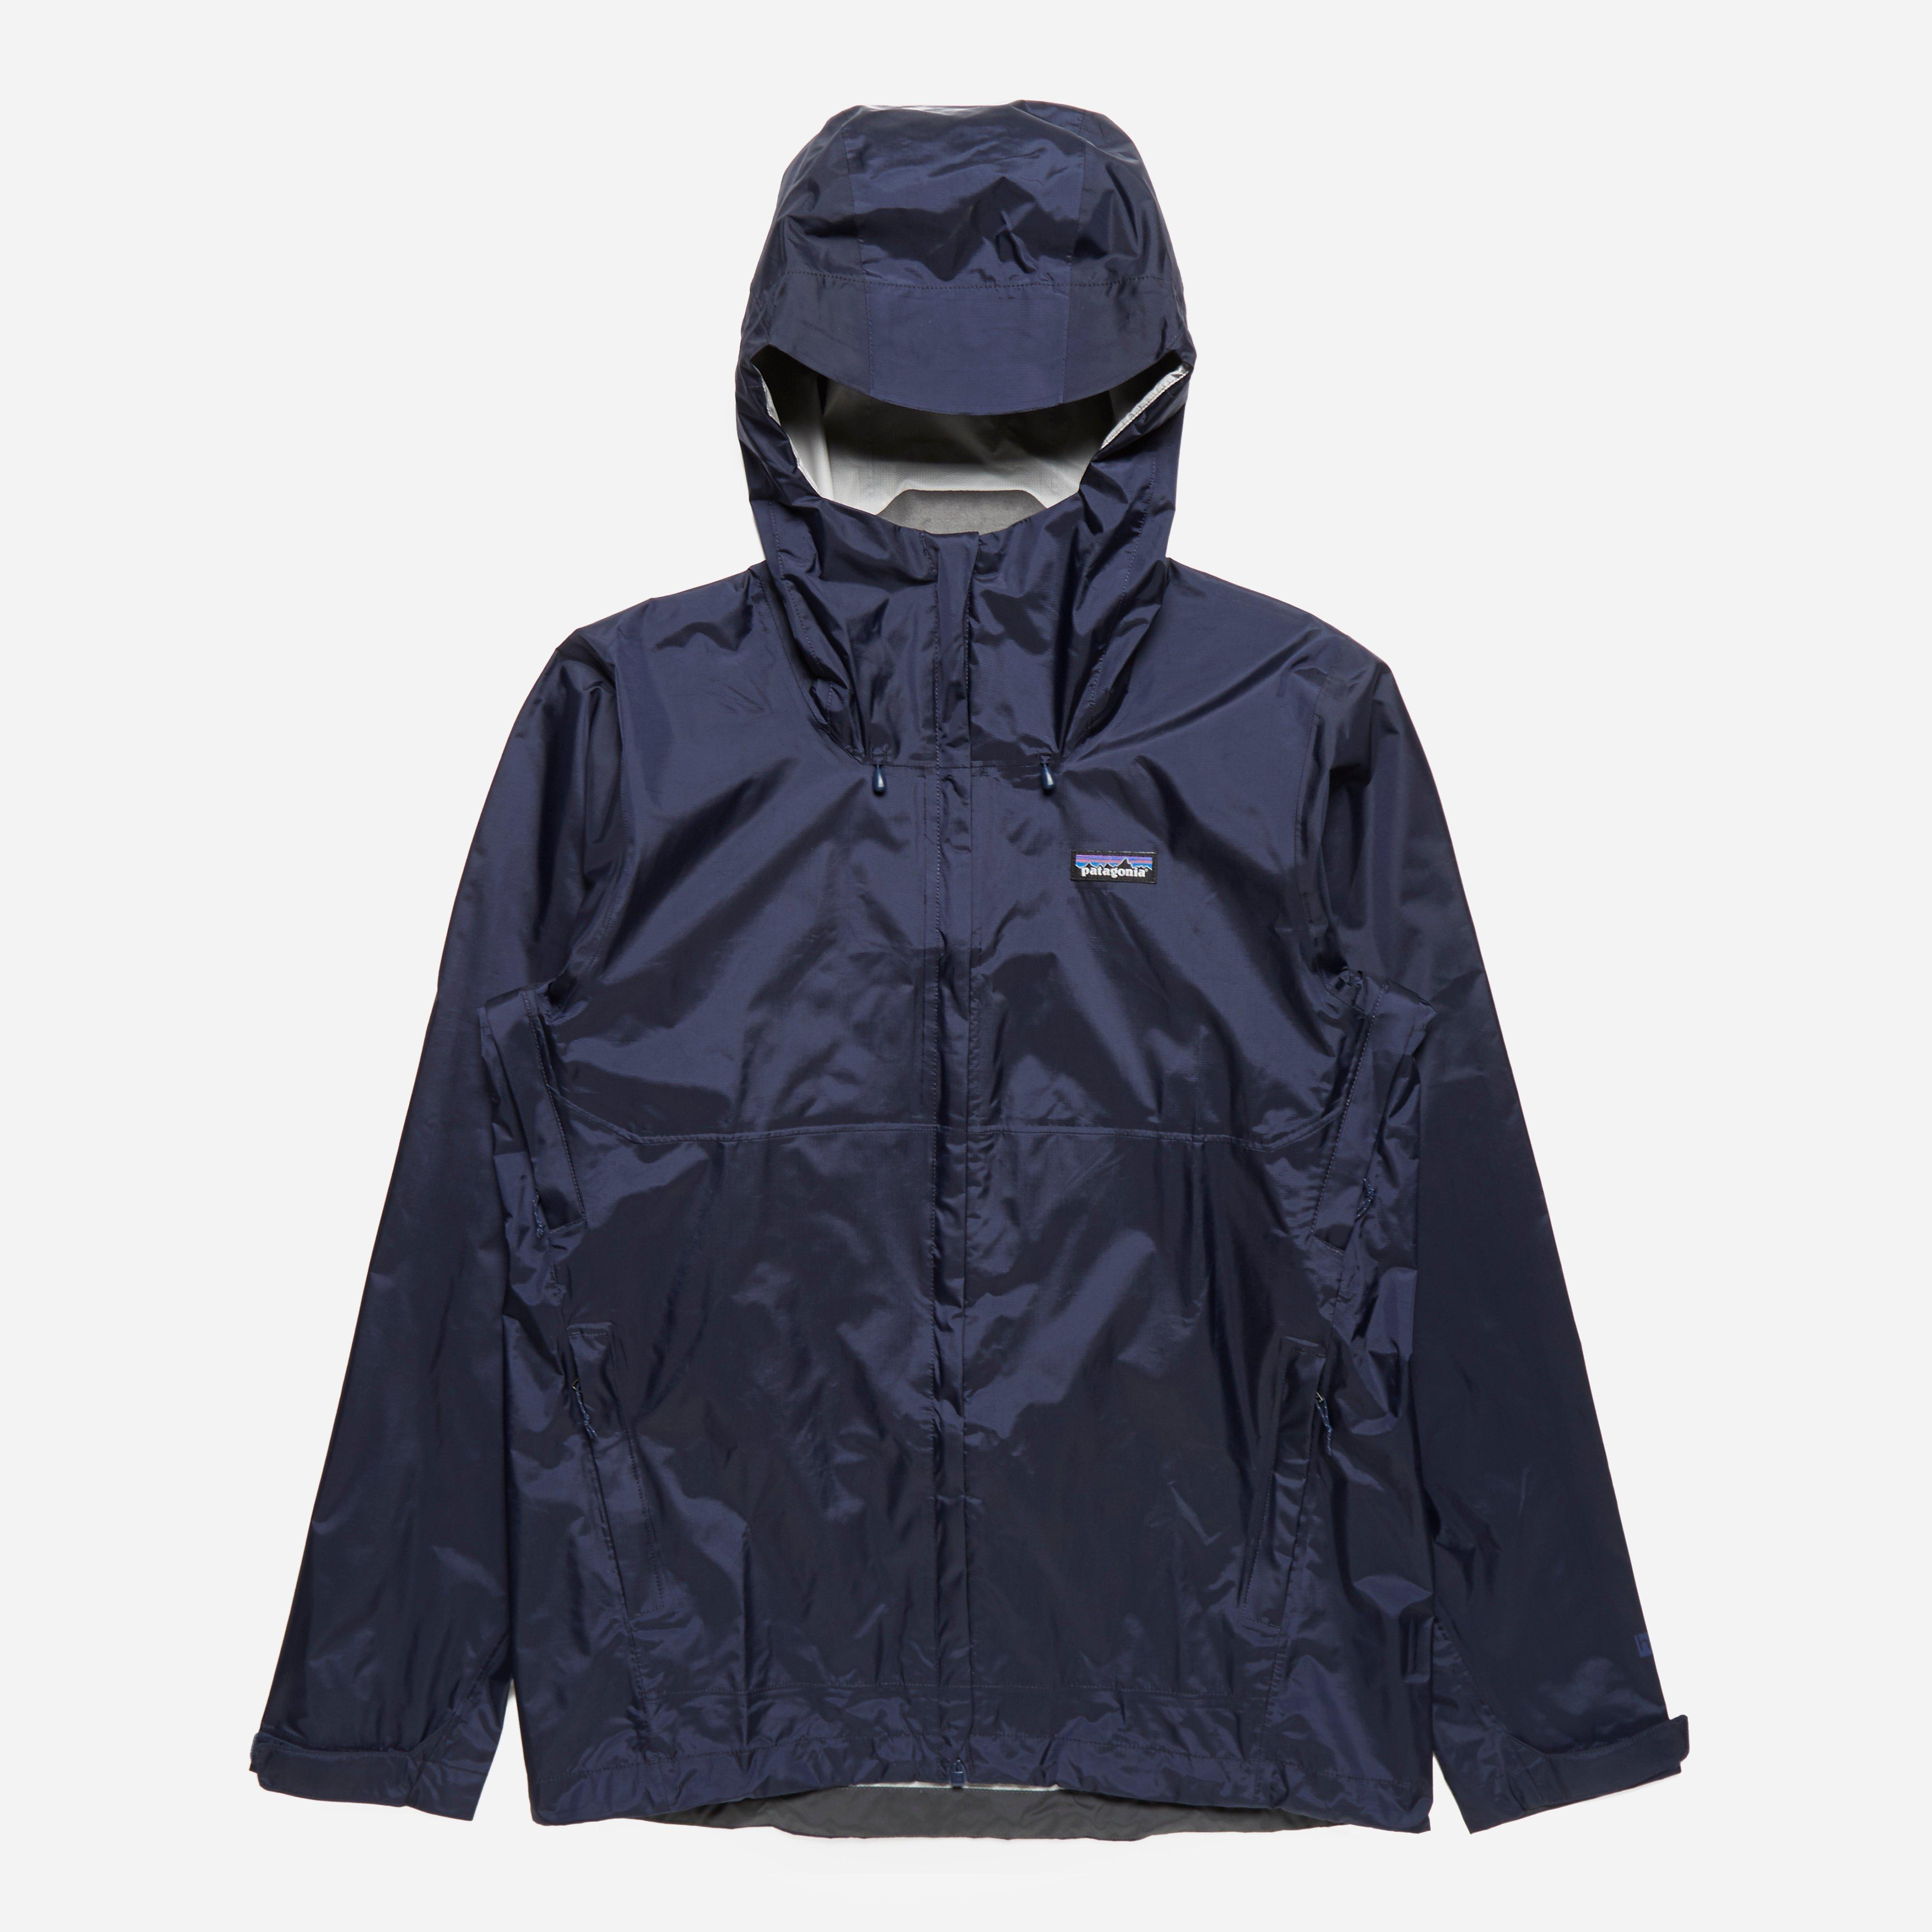 Patagonia Torrent Shell Jacket